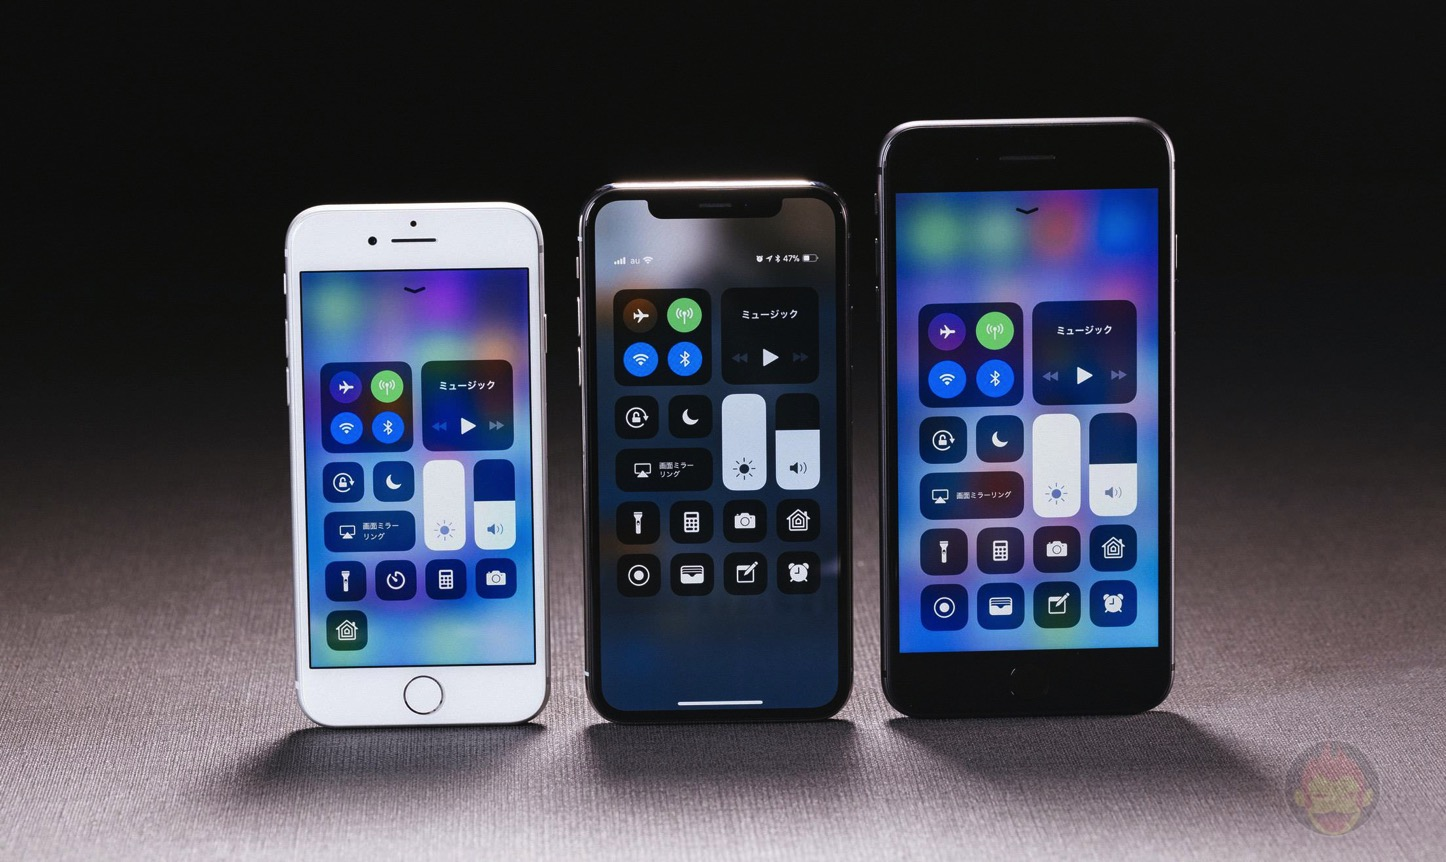 iPhoneX-Control-Center-Battery-02.jpg